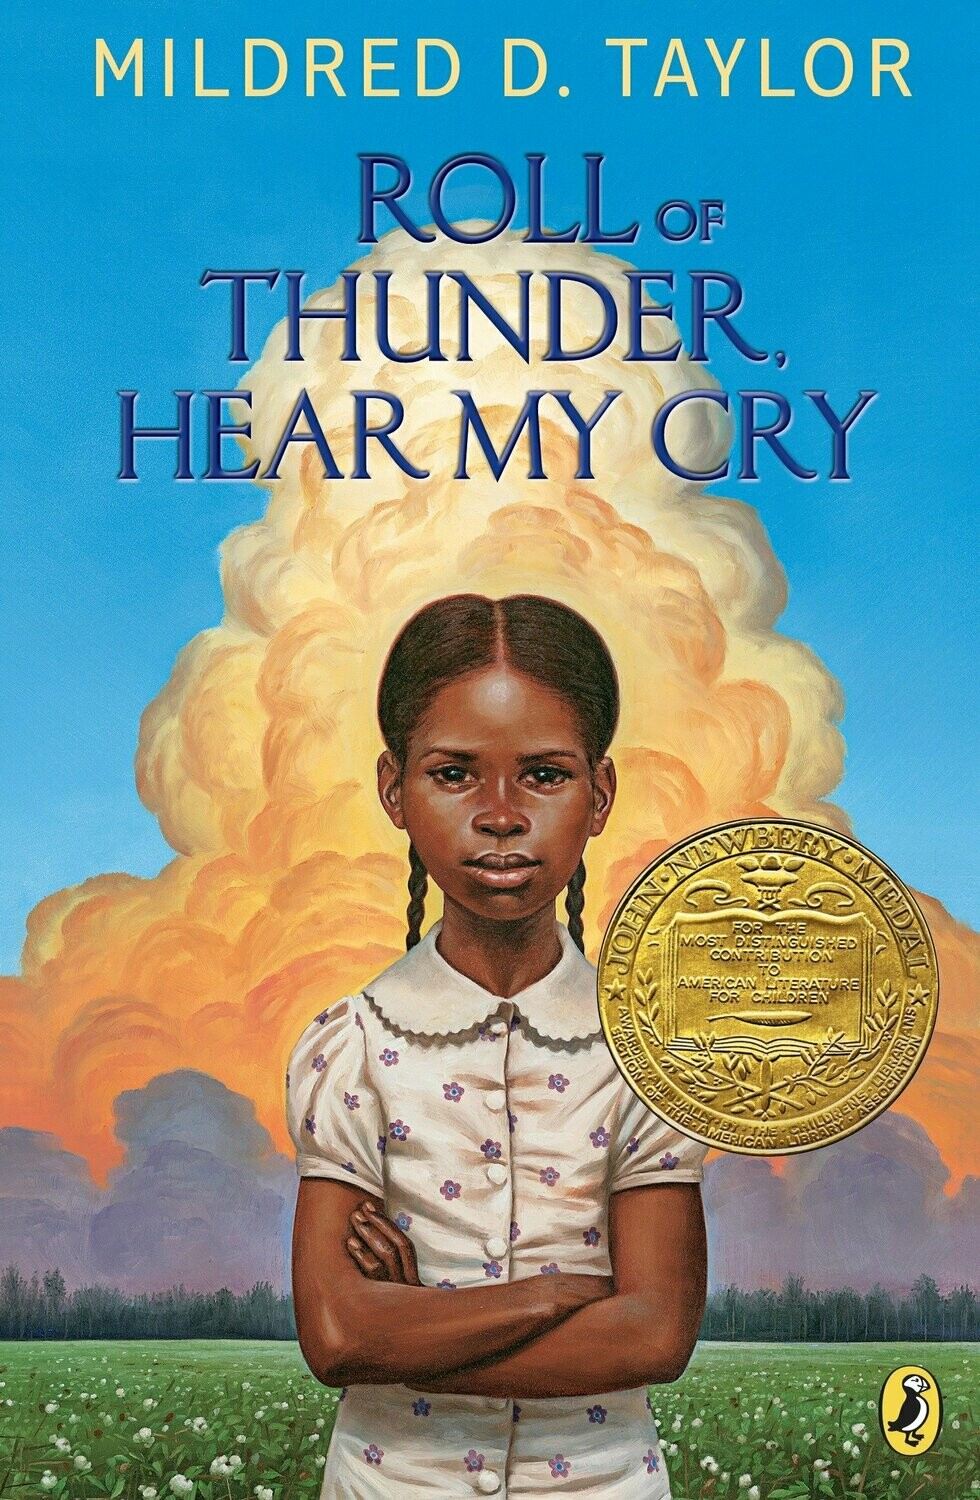 Taylor, Mildred D- Roll of Thunder, Hear My Cry